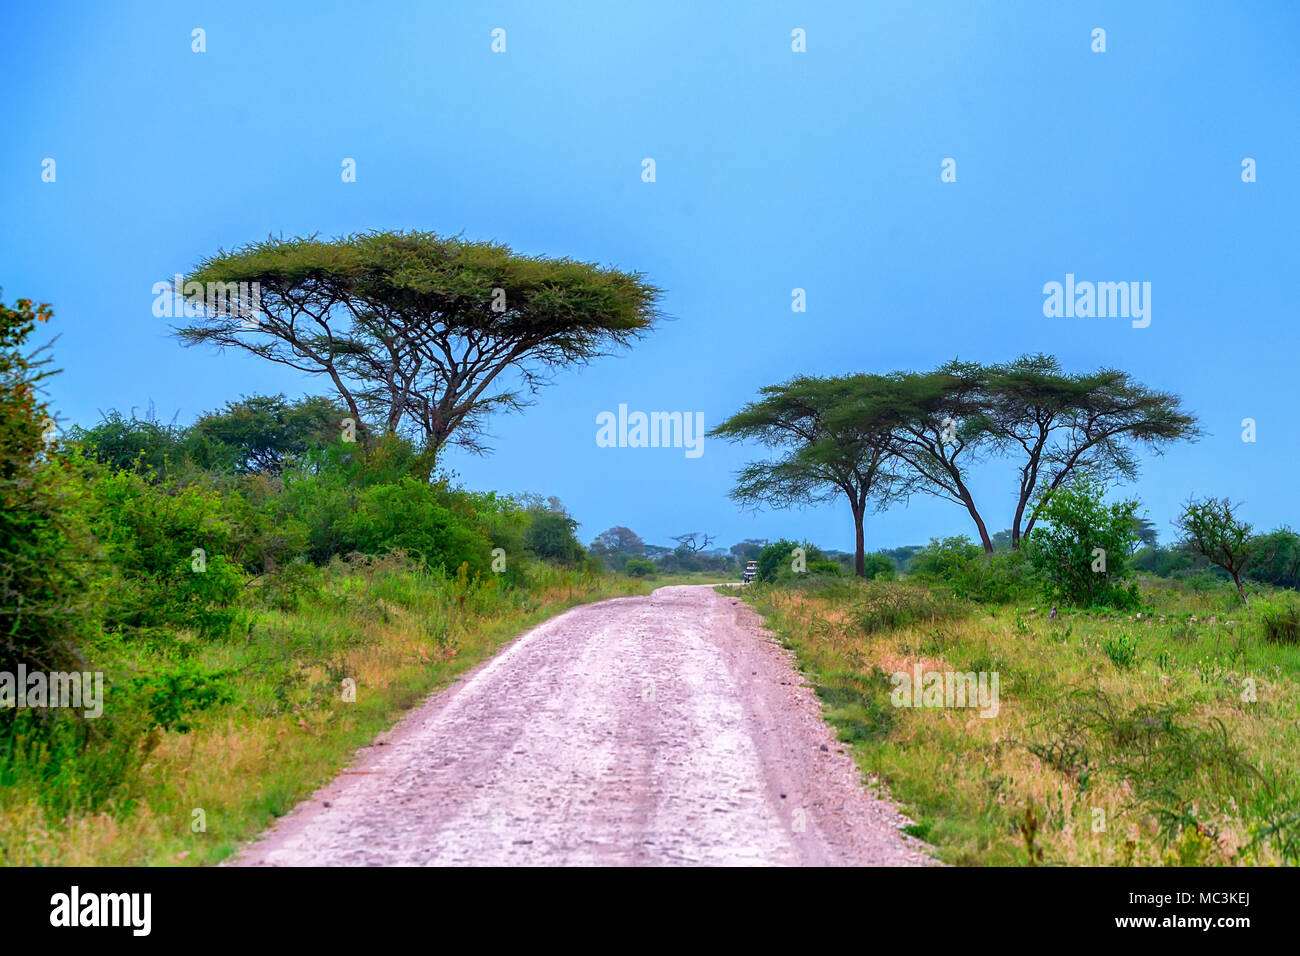 Road in African scenic forest - Stock Image